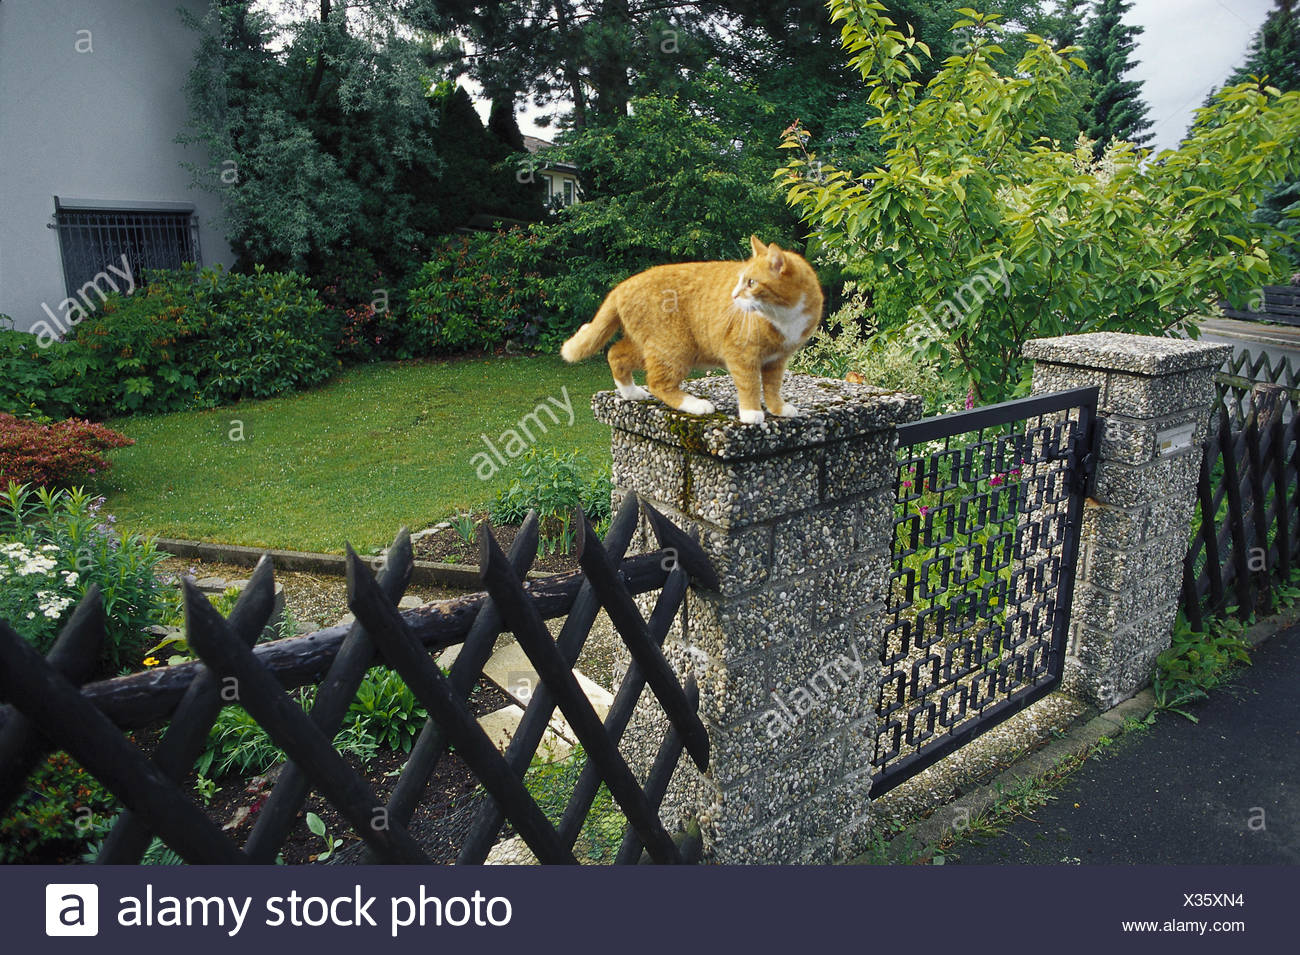 Garden fence, gatepost, cat, sit, look around side view, fence, garden, property, goal, garden goal, post, pillar, house cat, animal, pet, red-striped, attention, whole body, outside, - Stock Image